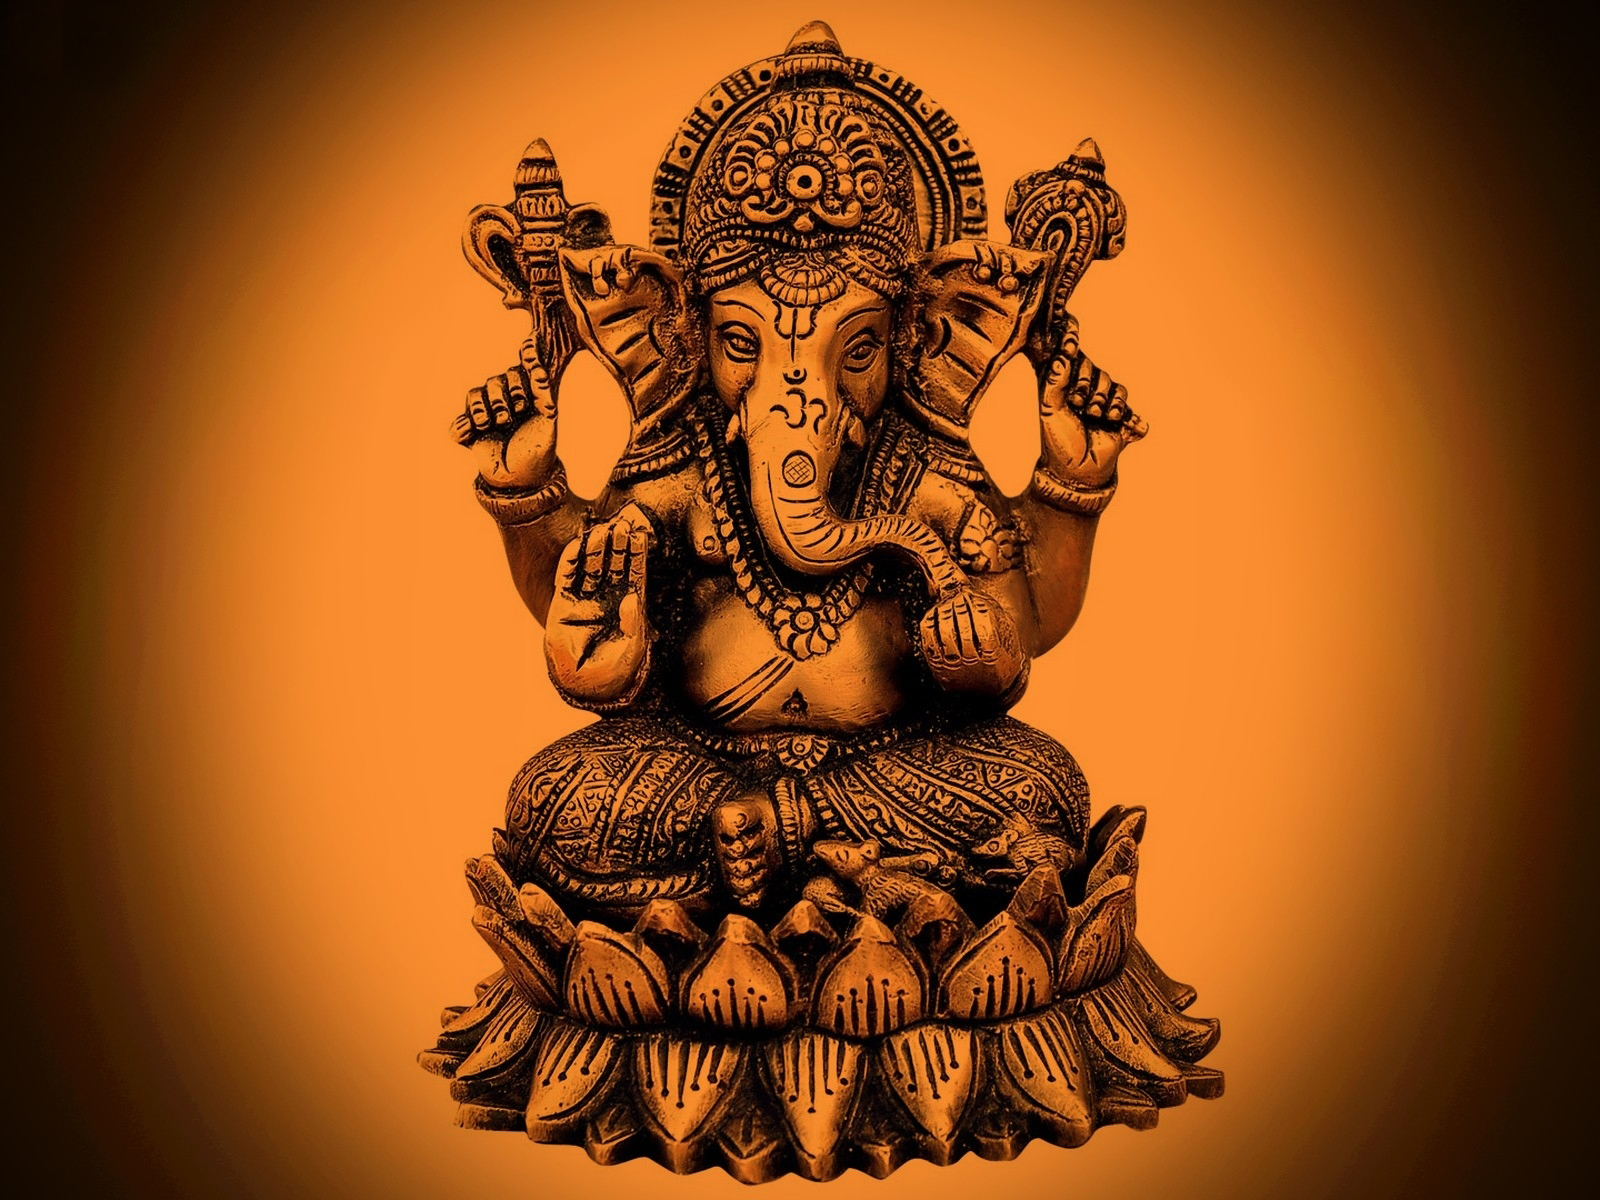 Hd wallpaper ganesh - Ganpati Photo